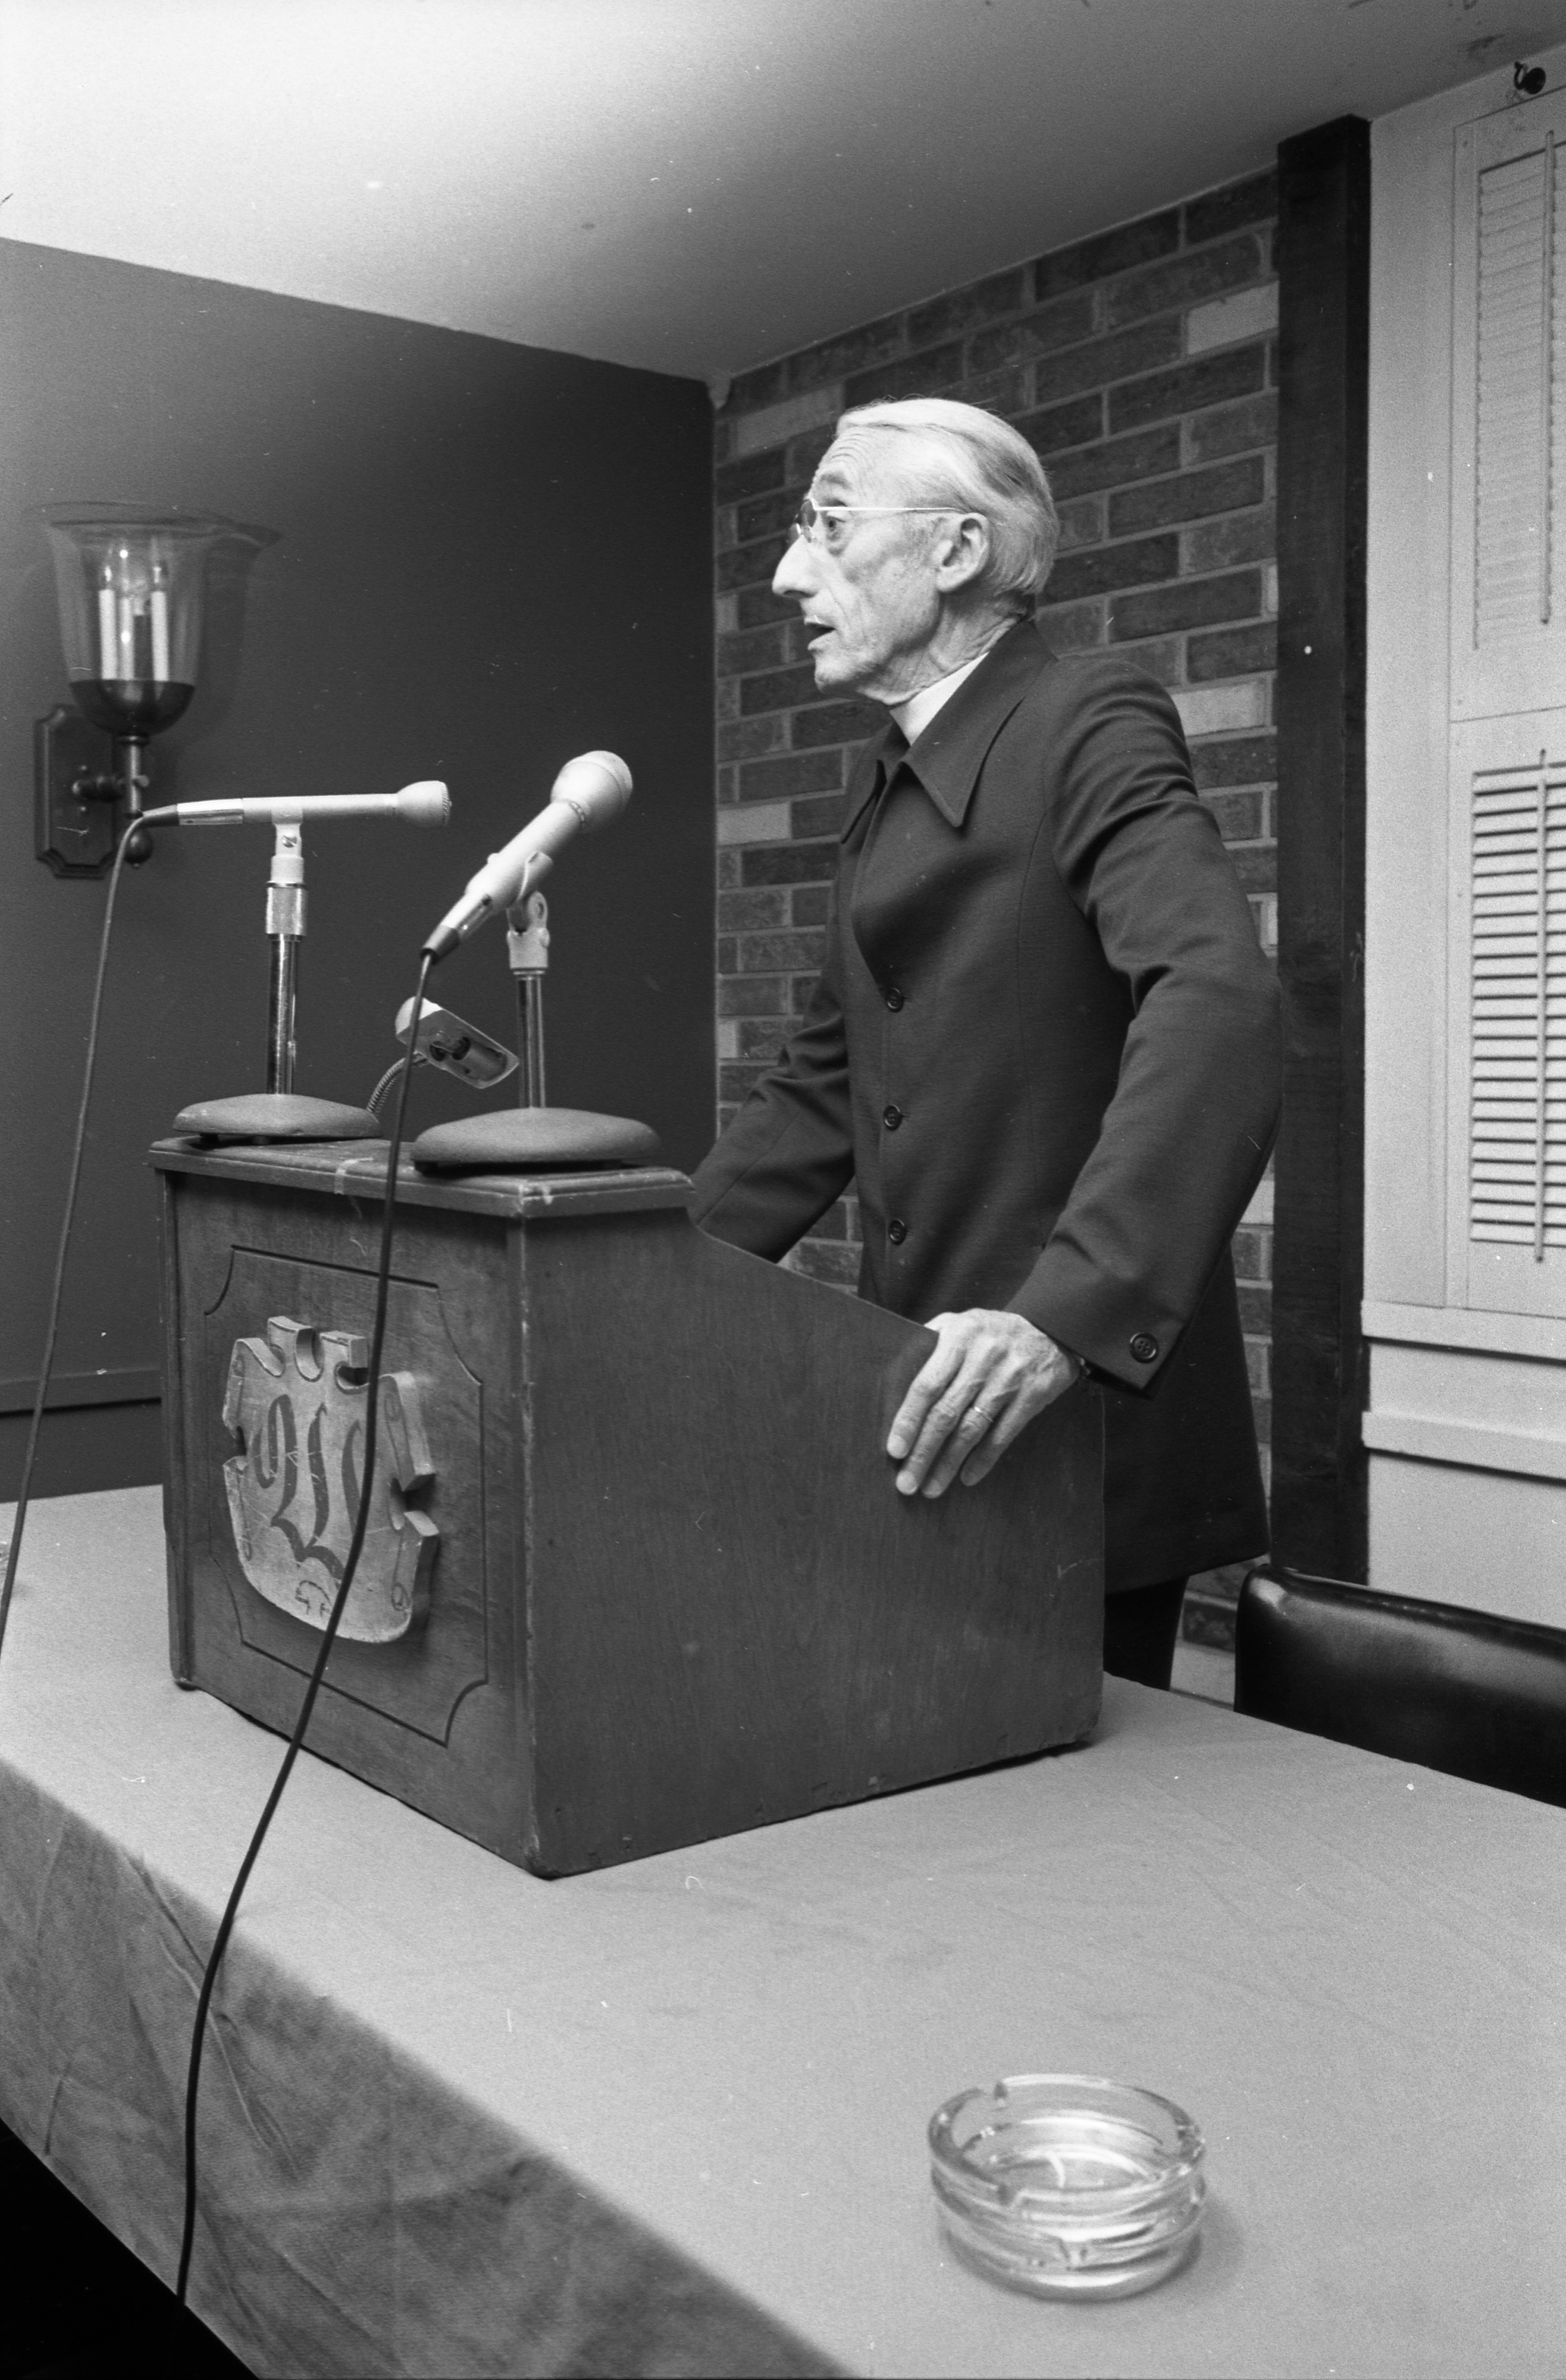 Jacques Cousteau At Speaking Engagement At Weber's, October 1975 image